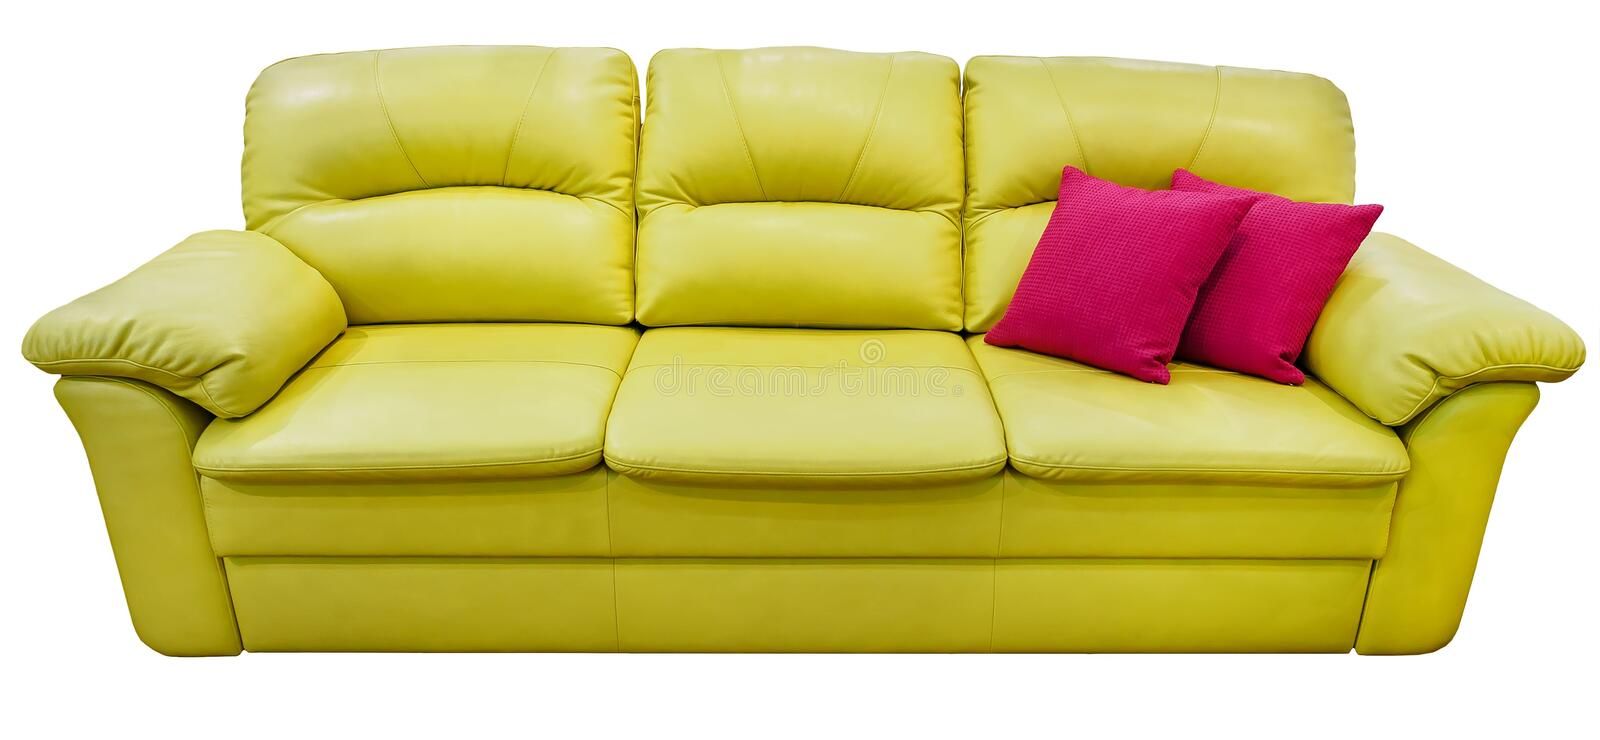 Green lime sofa with pink pillow. Soft lemon couch. Classic pistachio divan on isolated background stock photos